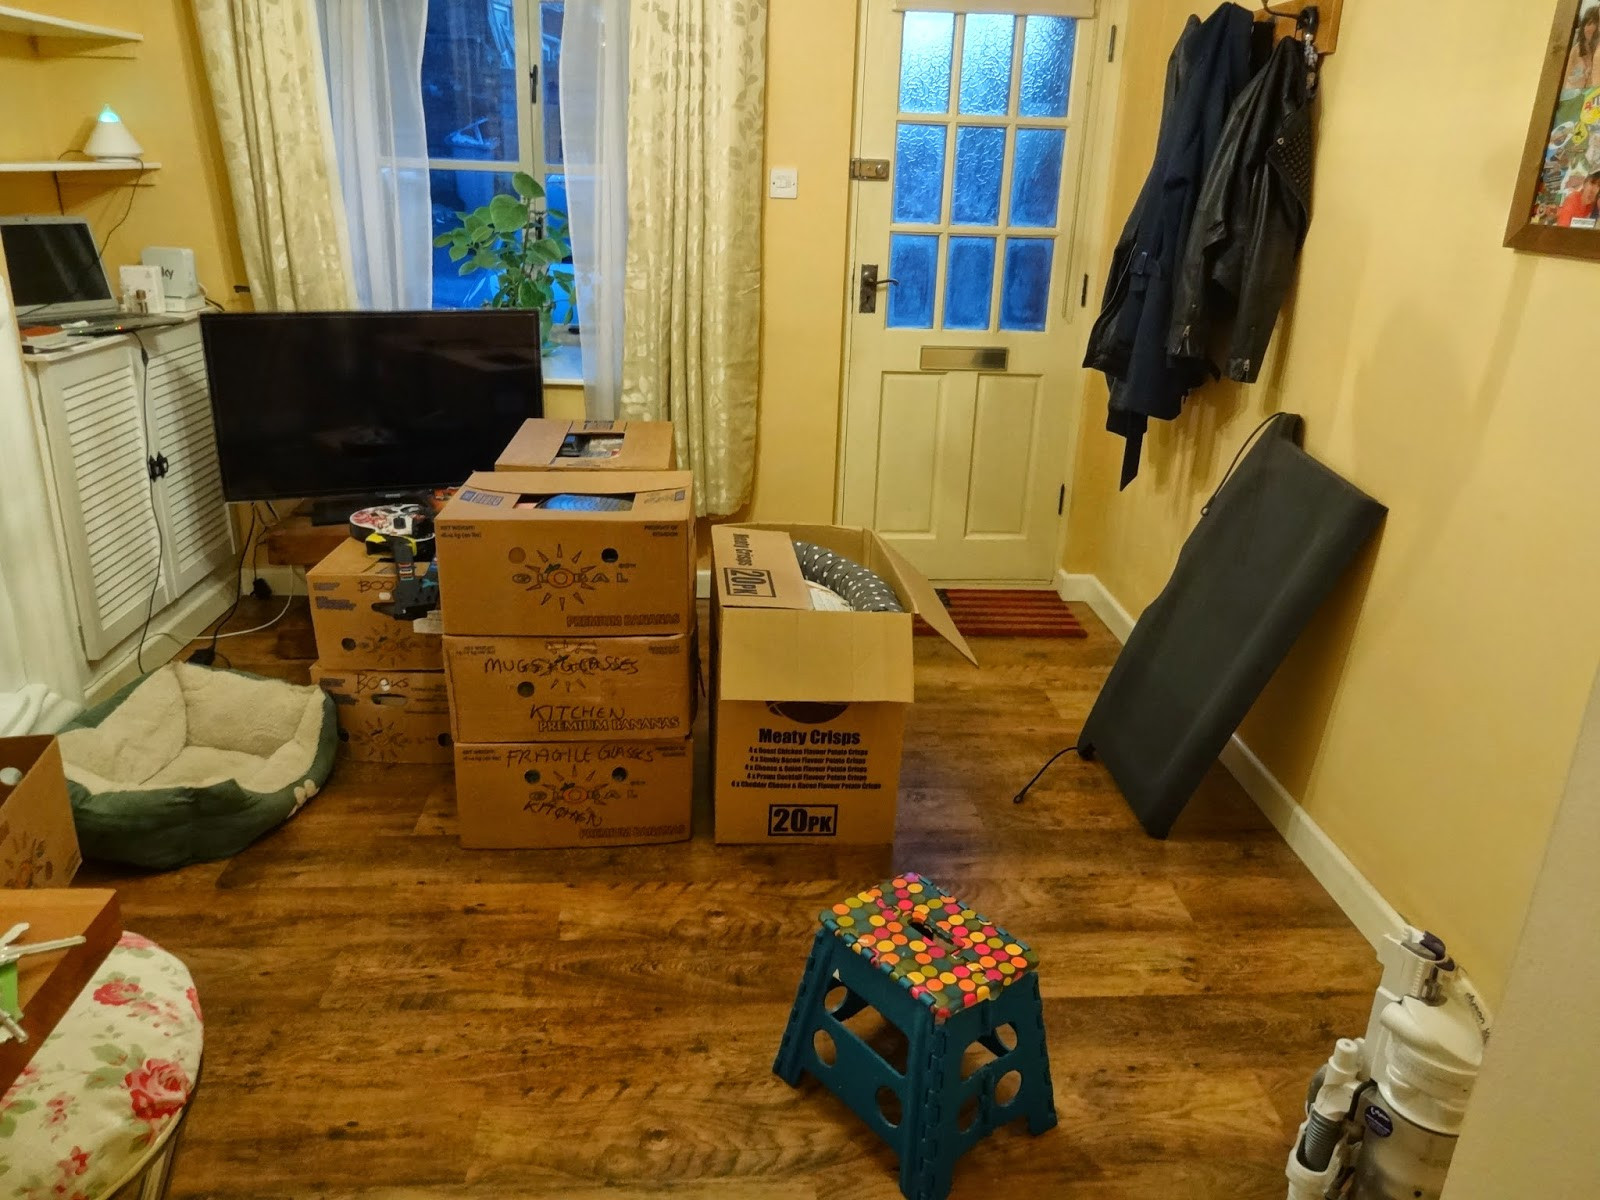 using banana boxes from a supermarket to move house